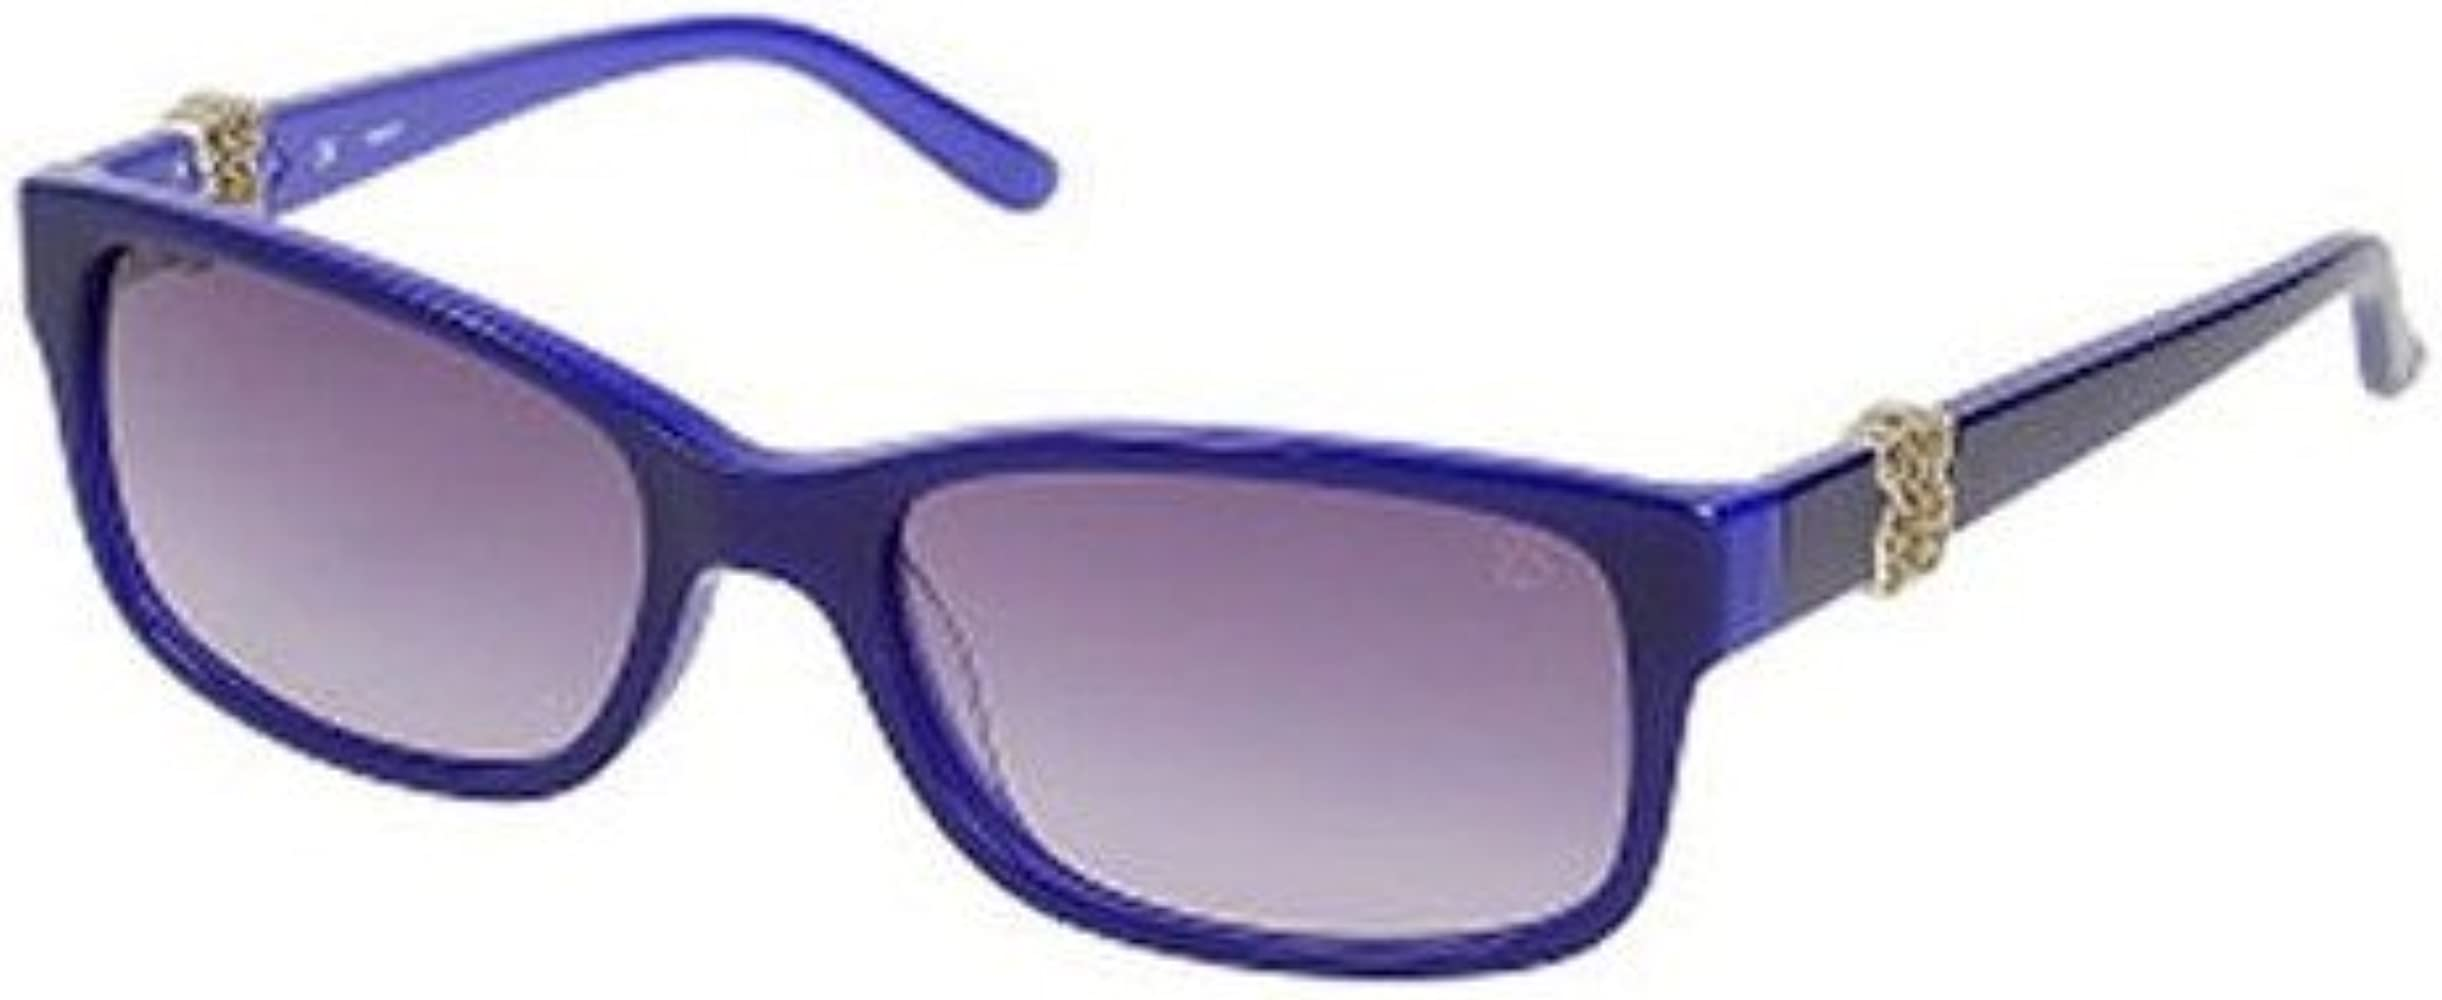 Tous Gafas de Sol 789-550899 (55 mm) Azul: Amazon.es: Ropa y ...